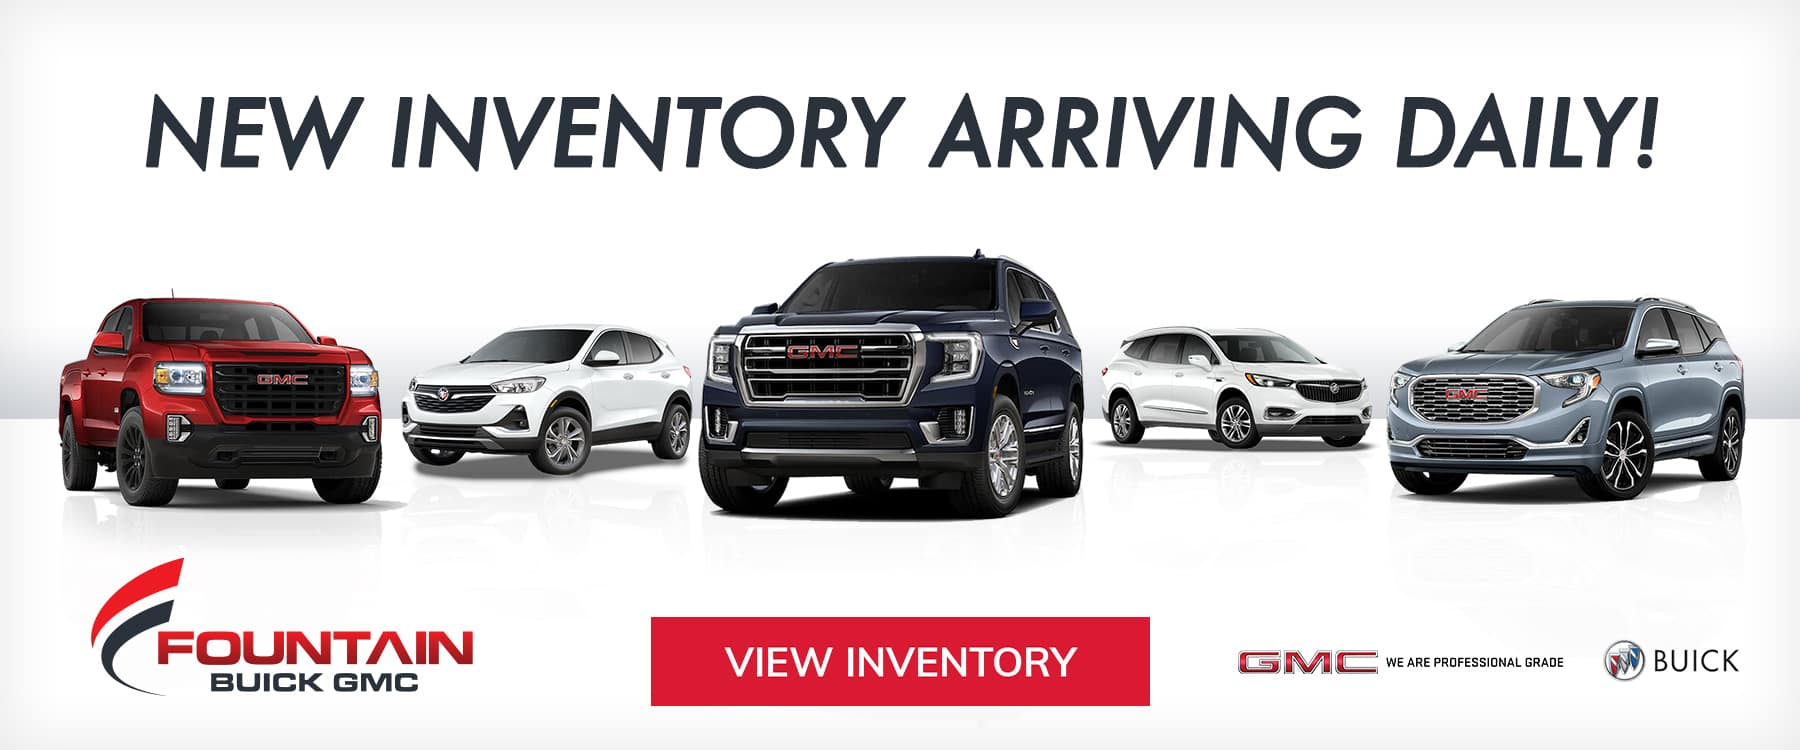 New Inventory Arriving Daily